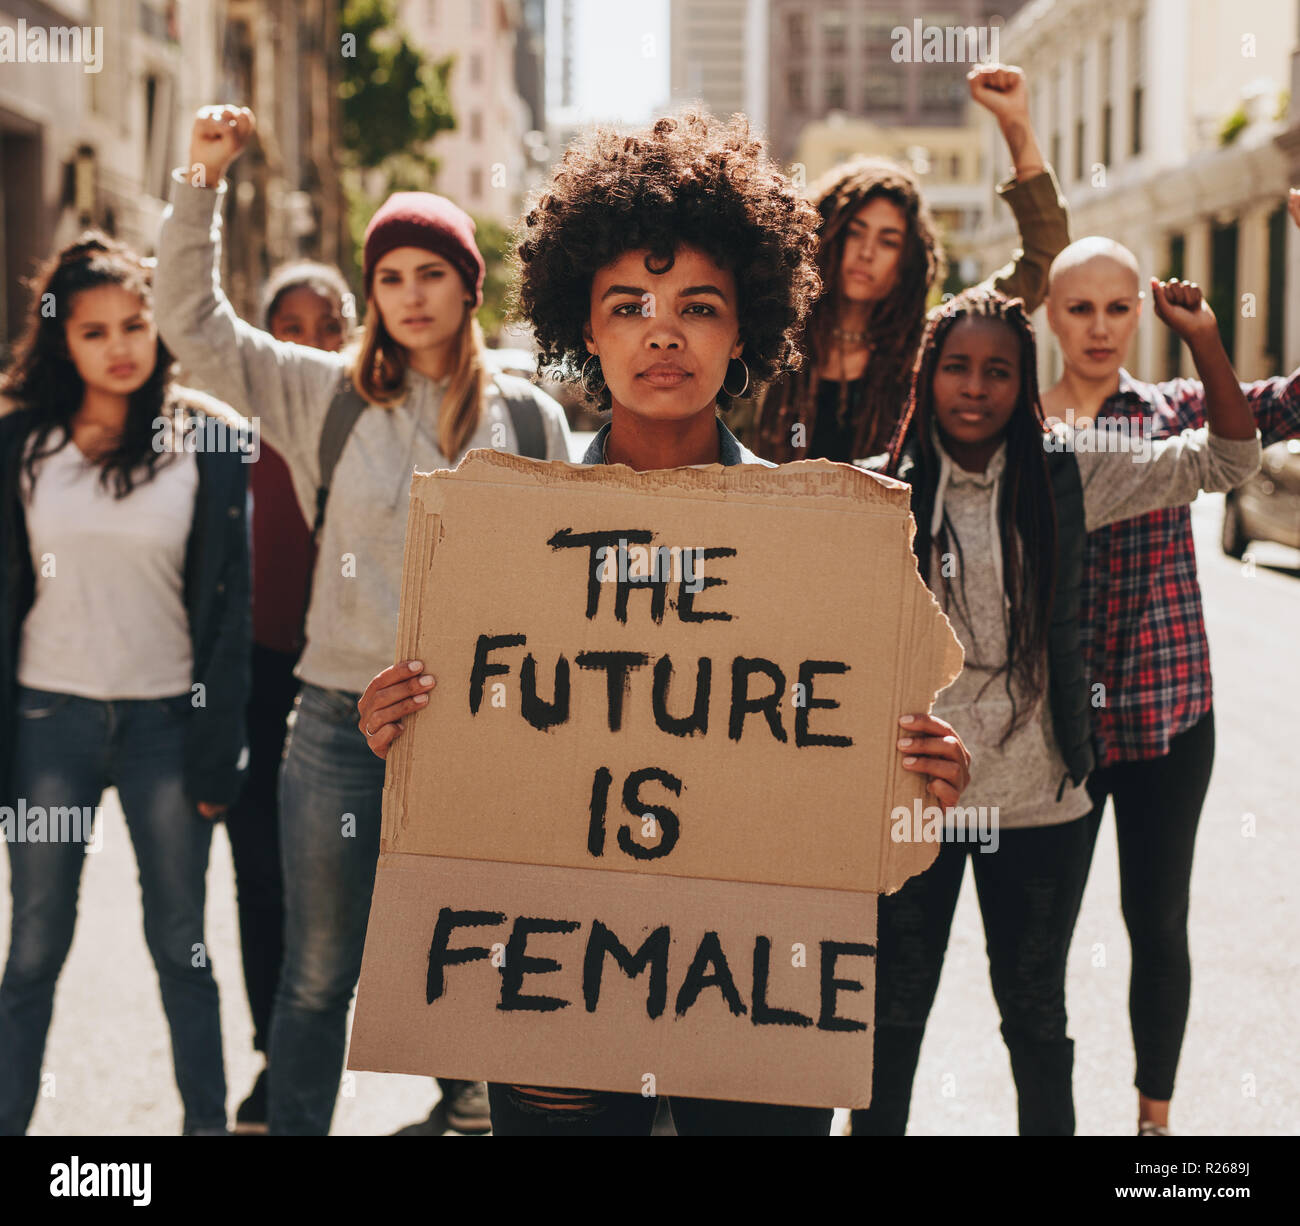 Protesters hold up signs of the future is female. Group of female protesting outdoors for women empowerment. - Stock Image